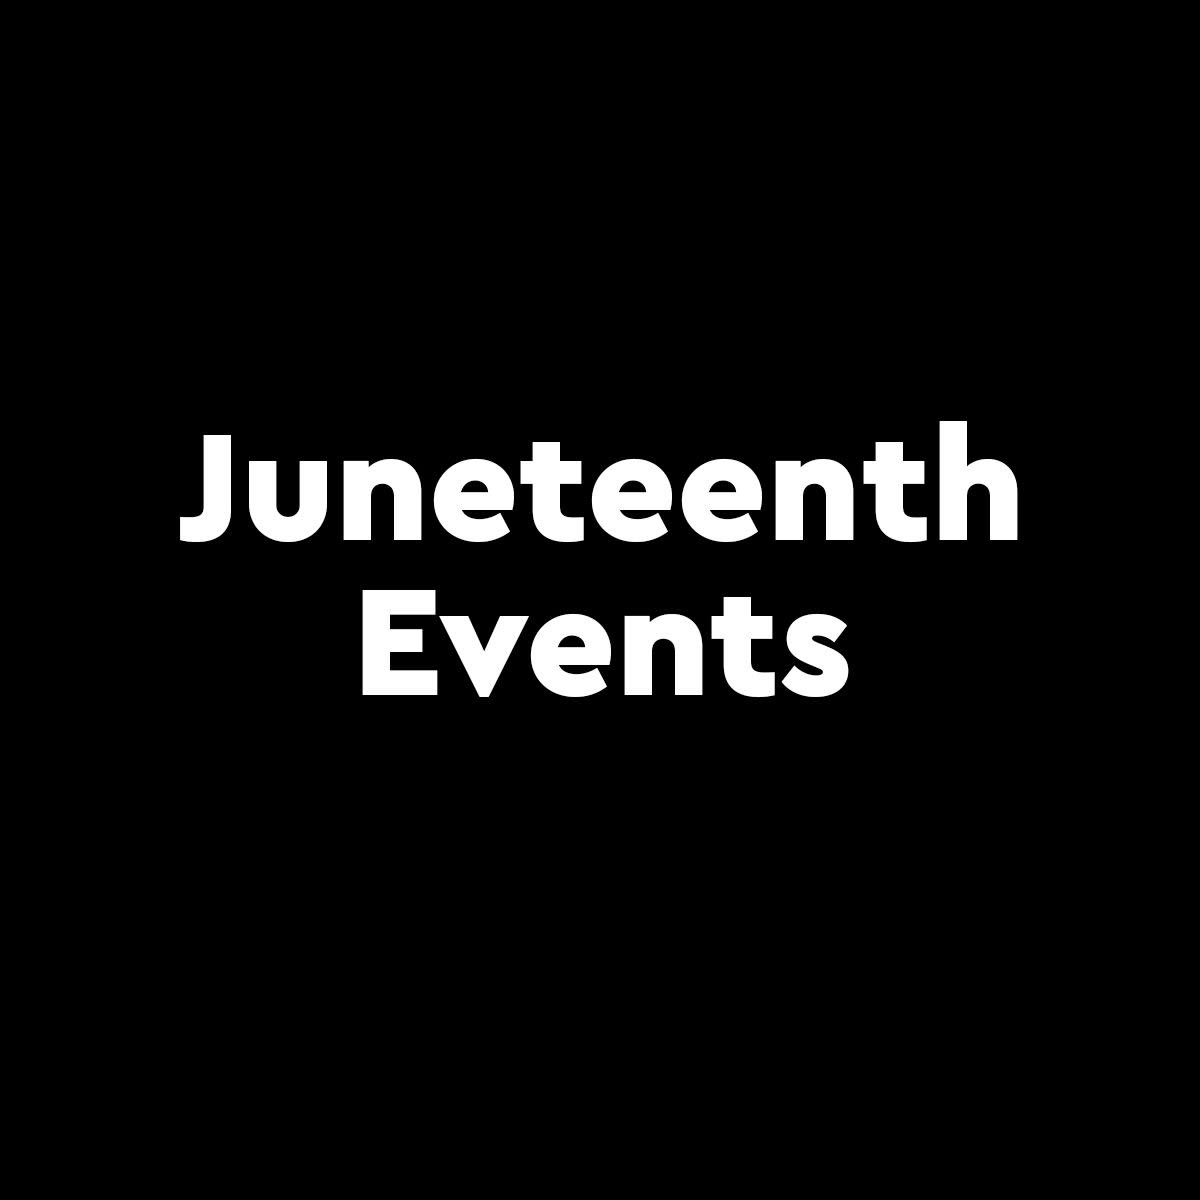 Image representing Juneteenth Events